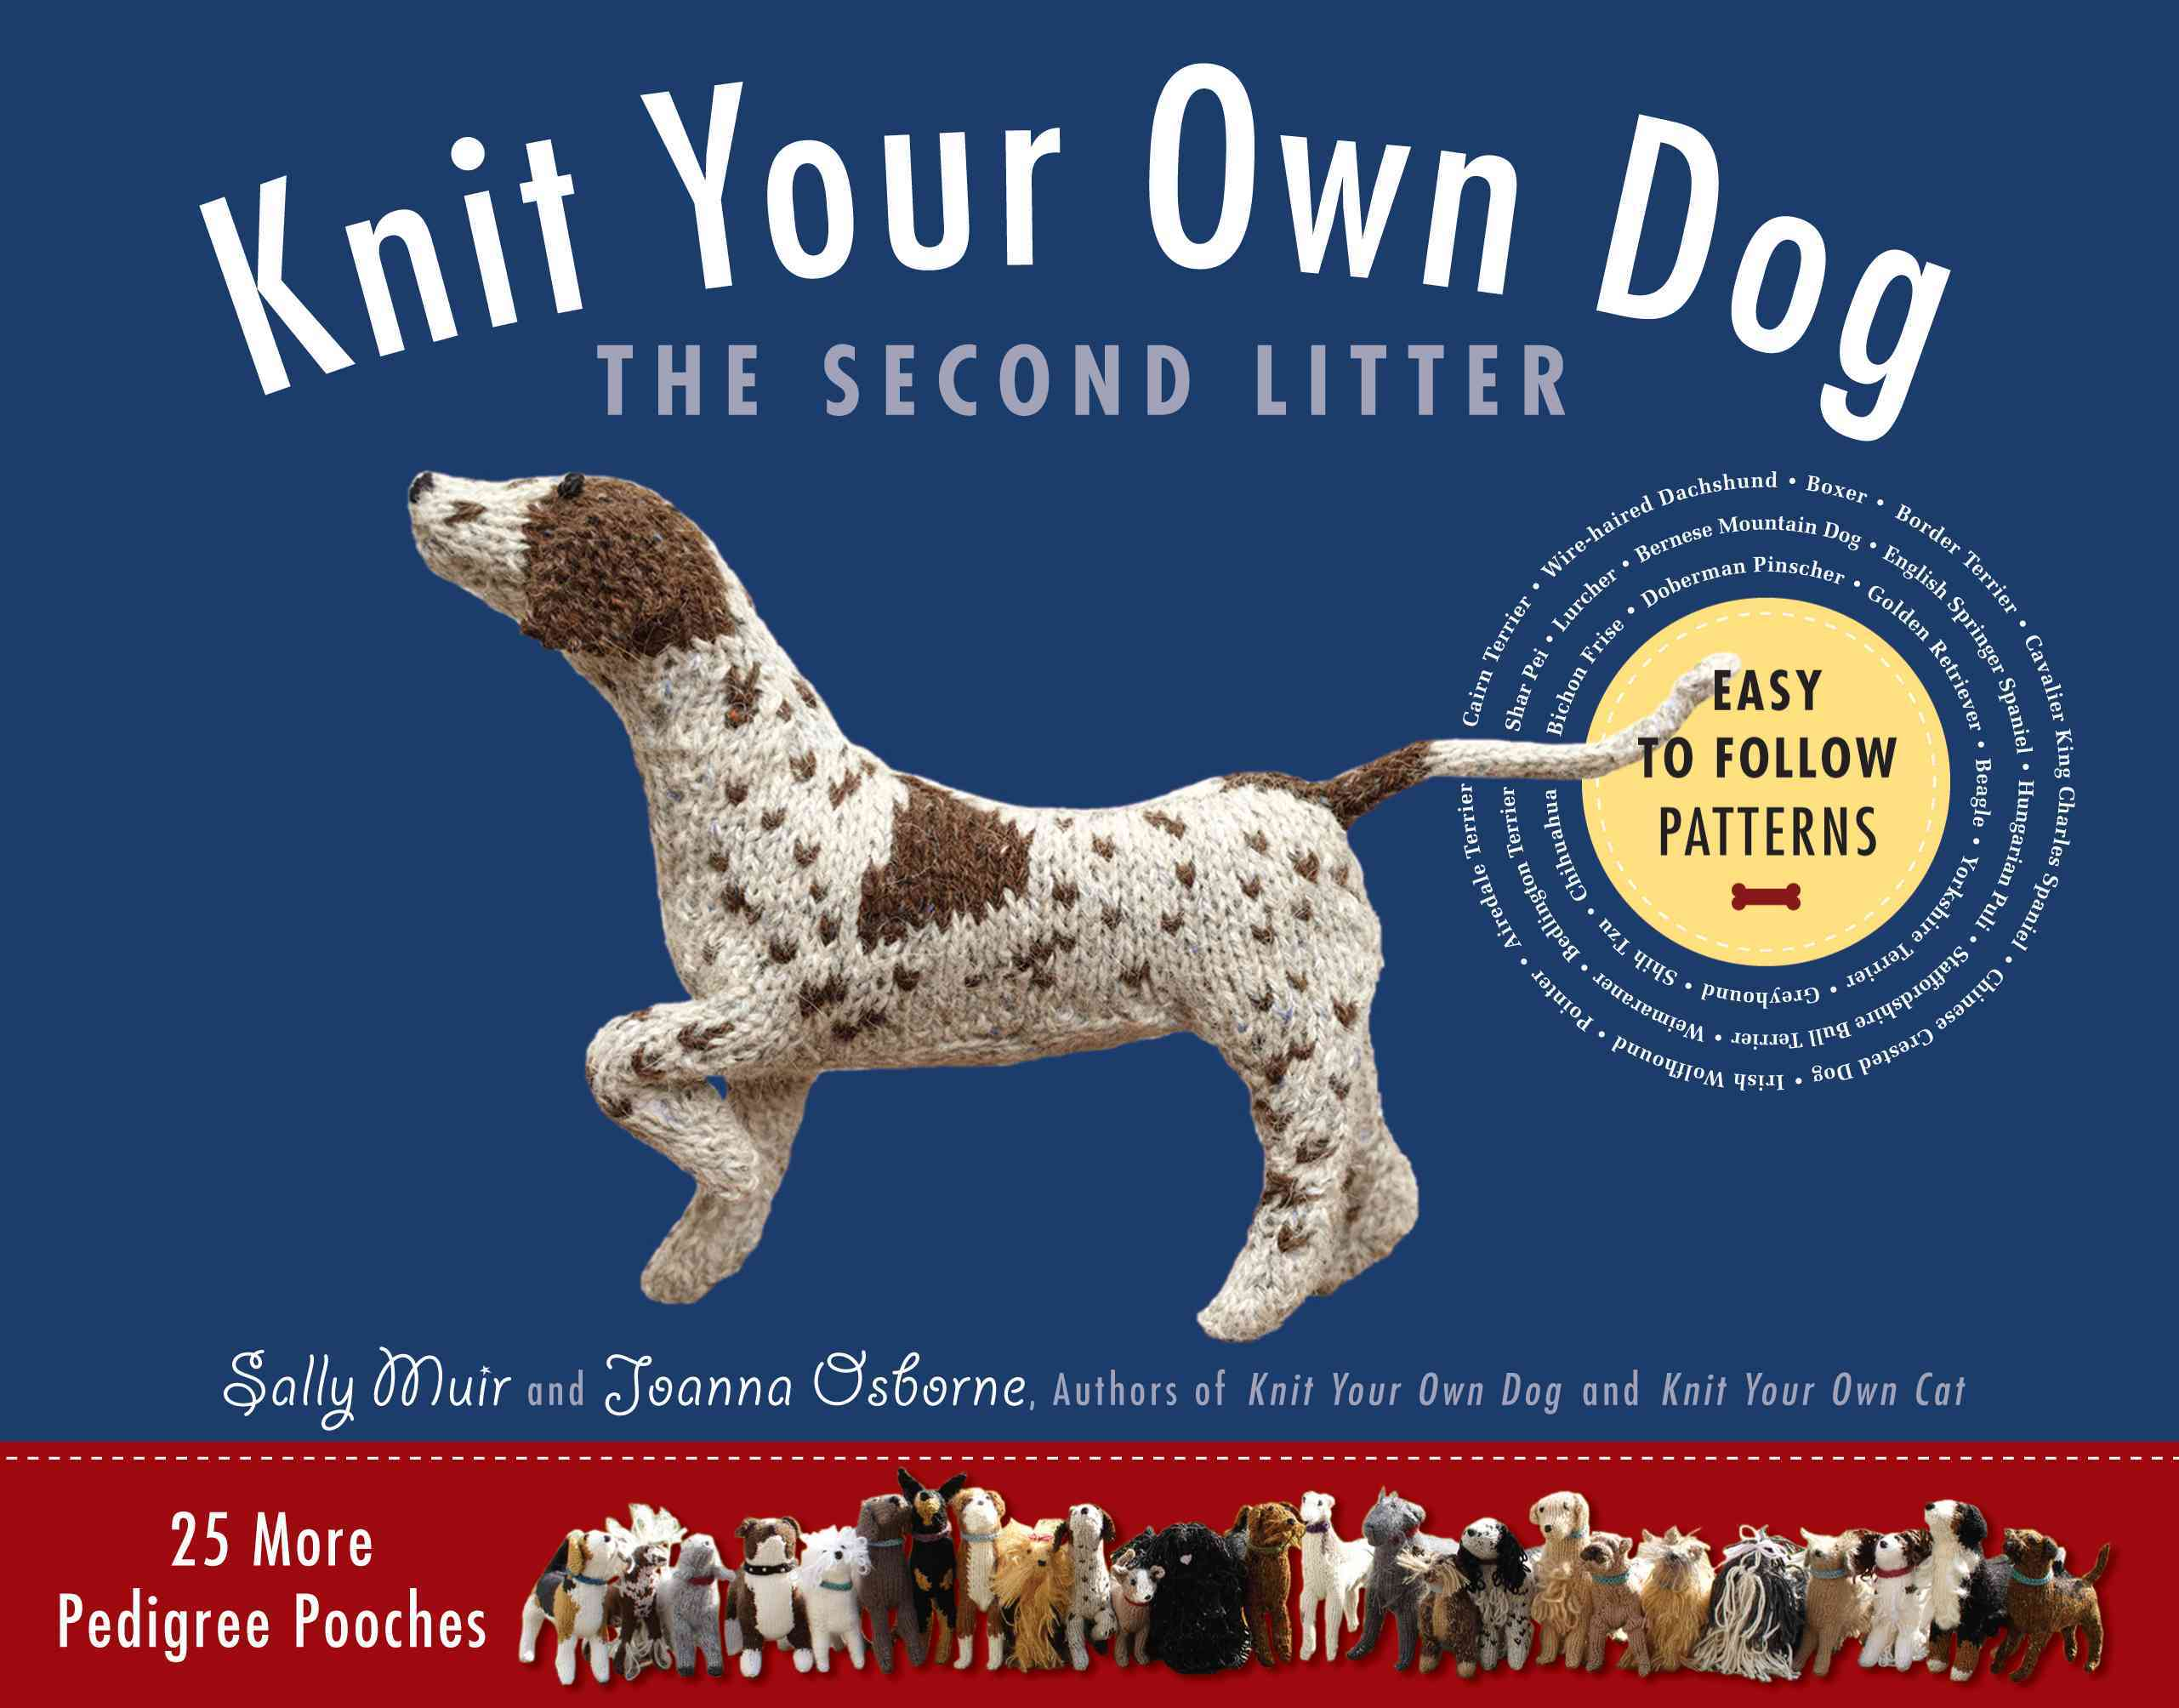 Knit Your Own Dog: The Second Litter: 25 More Pedigree Pooches (Paperback)